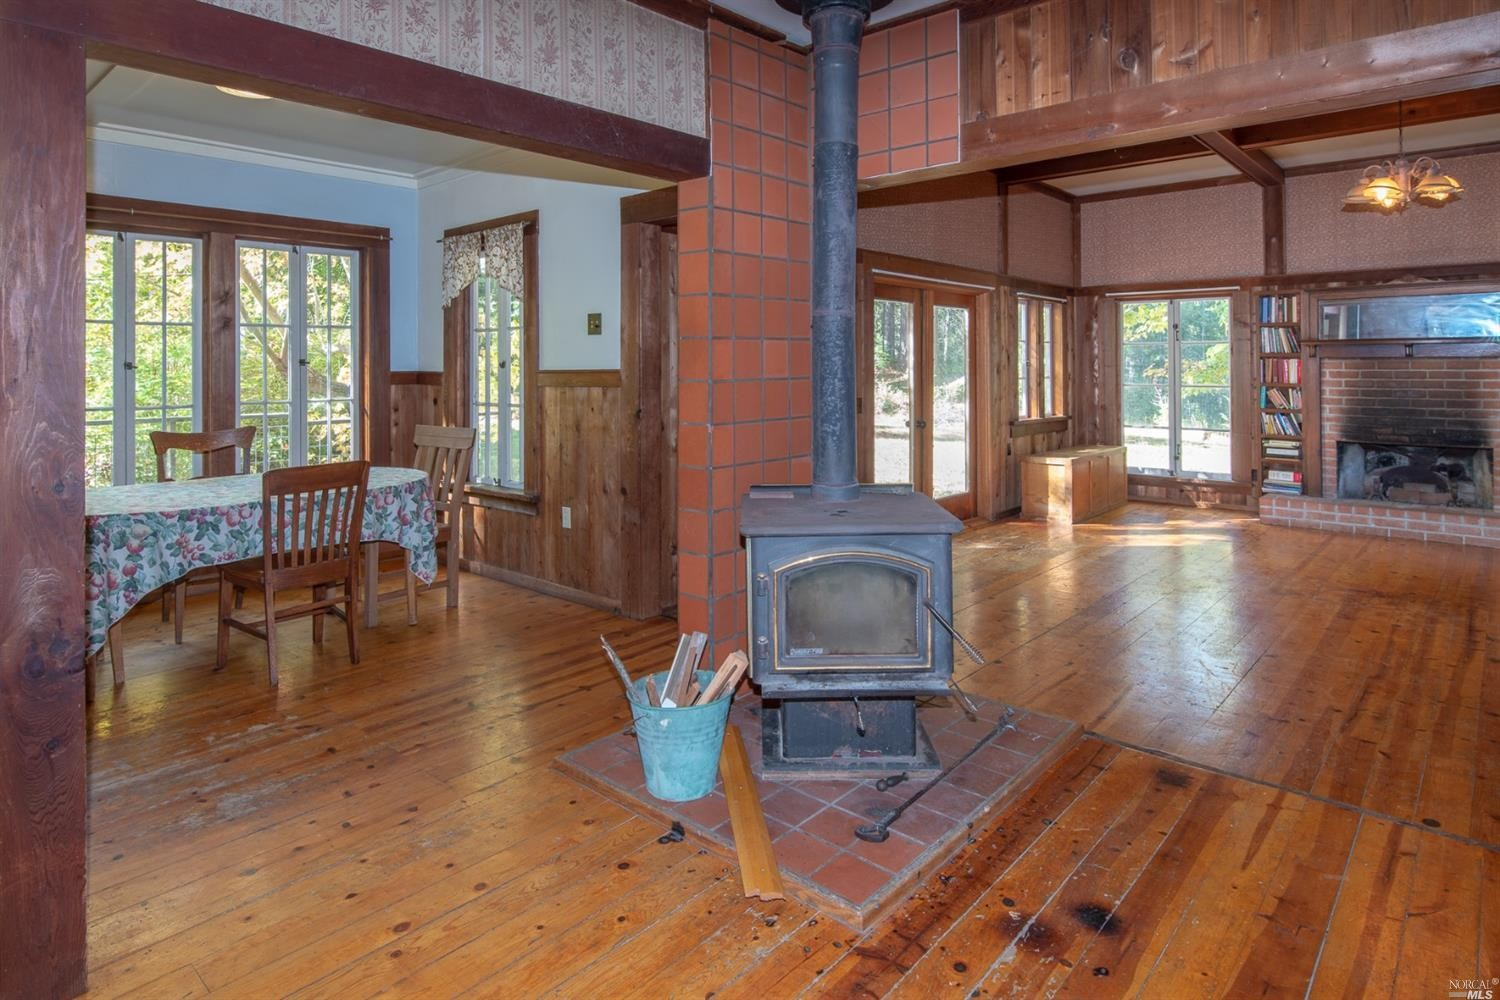 wood floors and wood burning stove in a family home for sale, Philo, CA